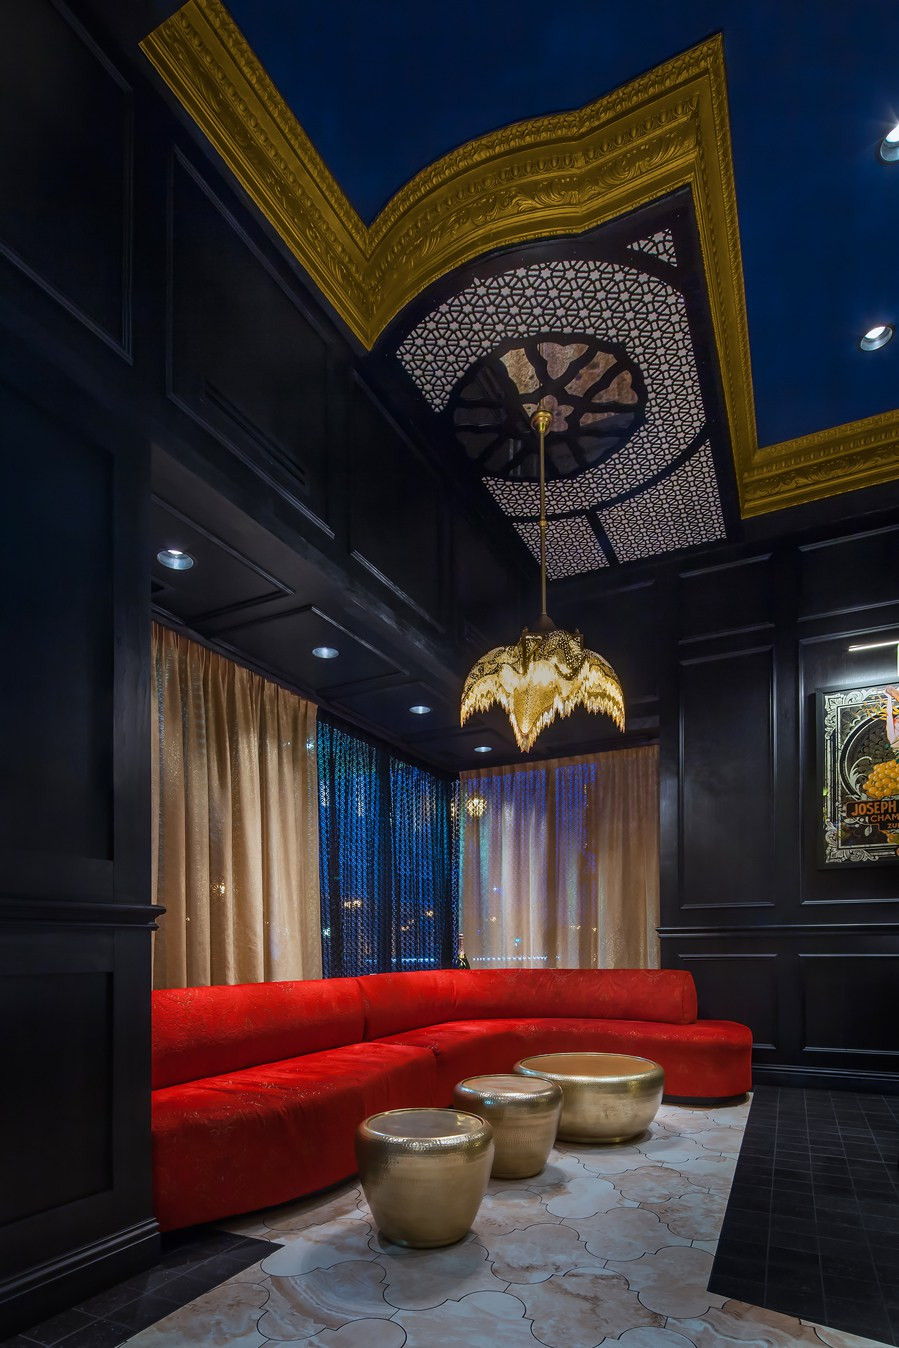 Restaurant and bar interior with a long red banquette sofa and blue and gold ceilings